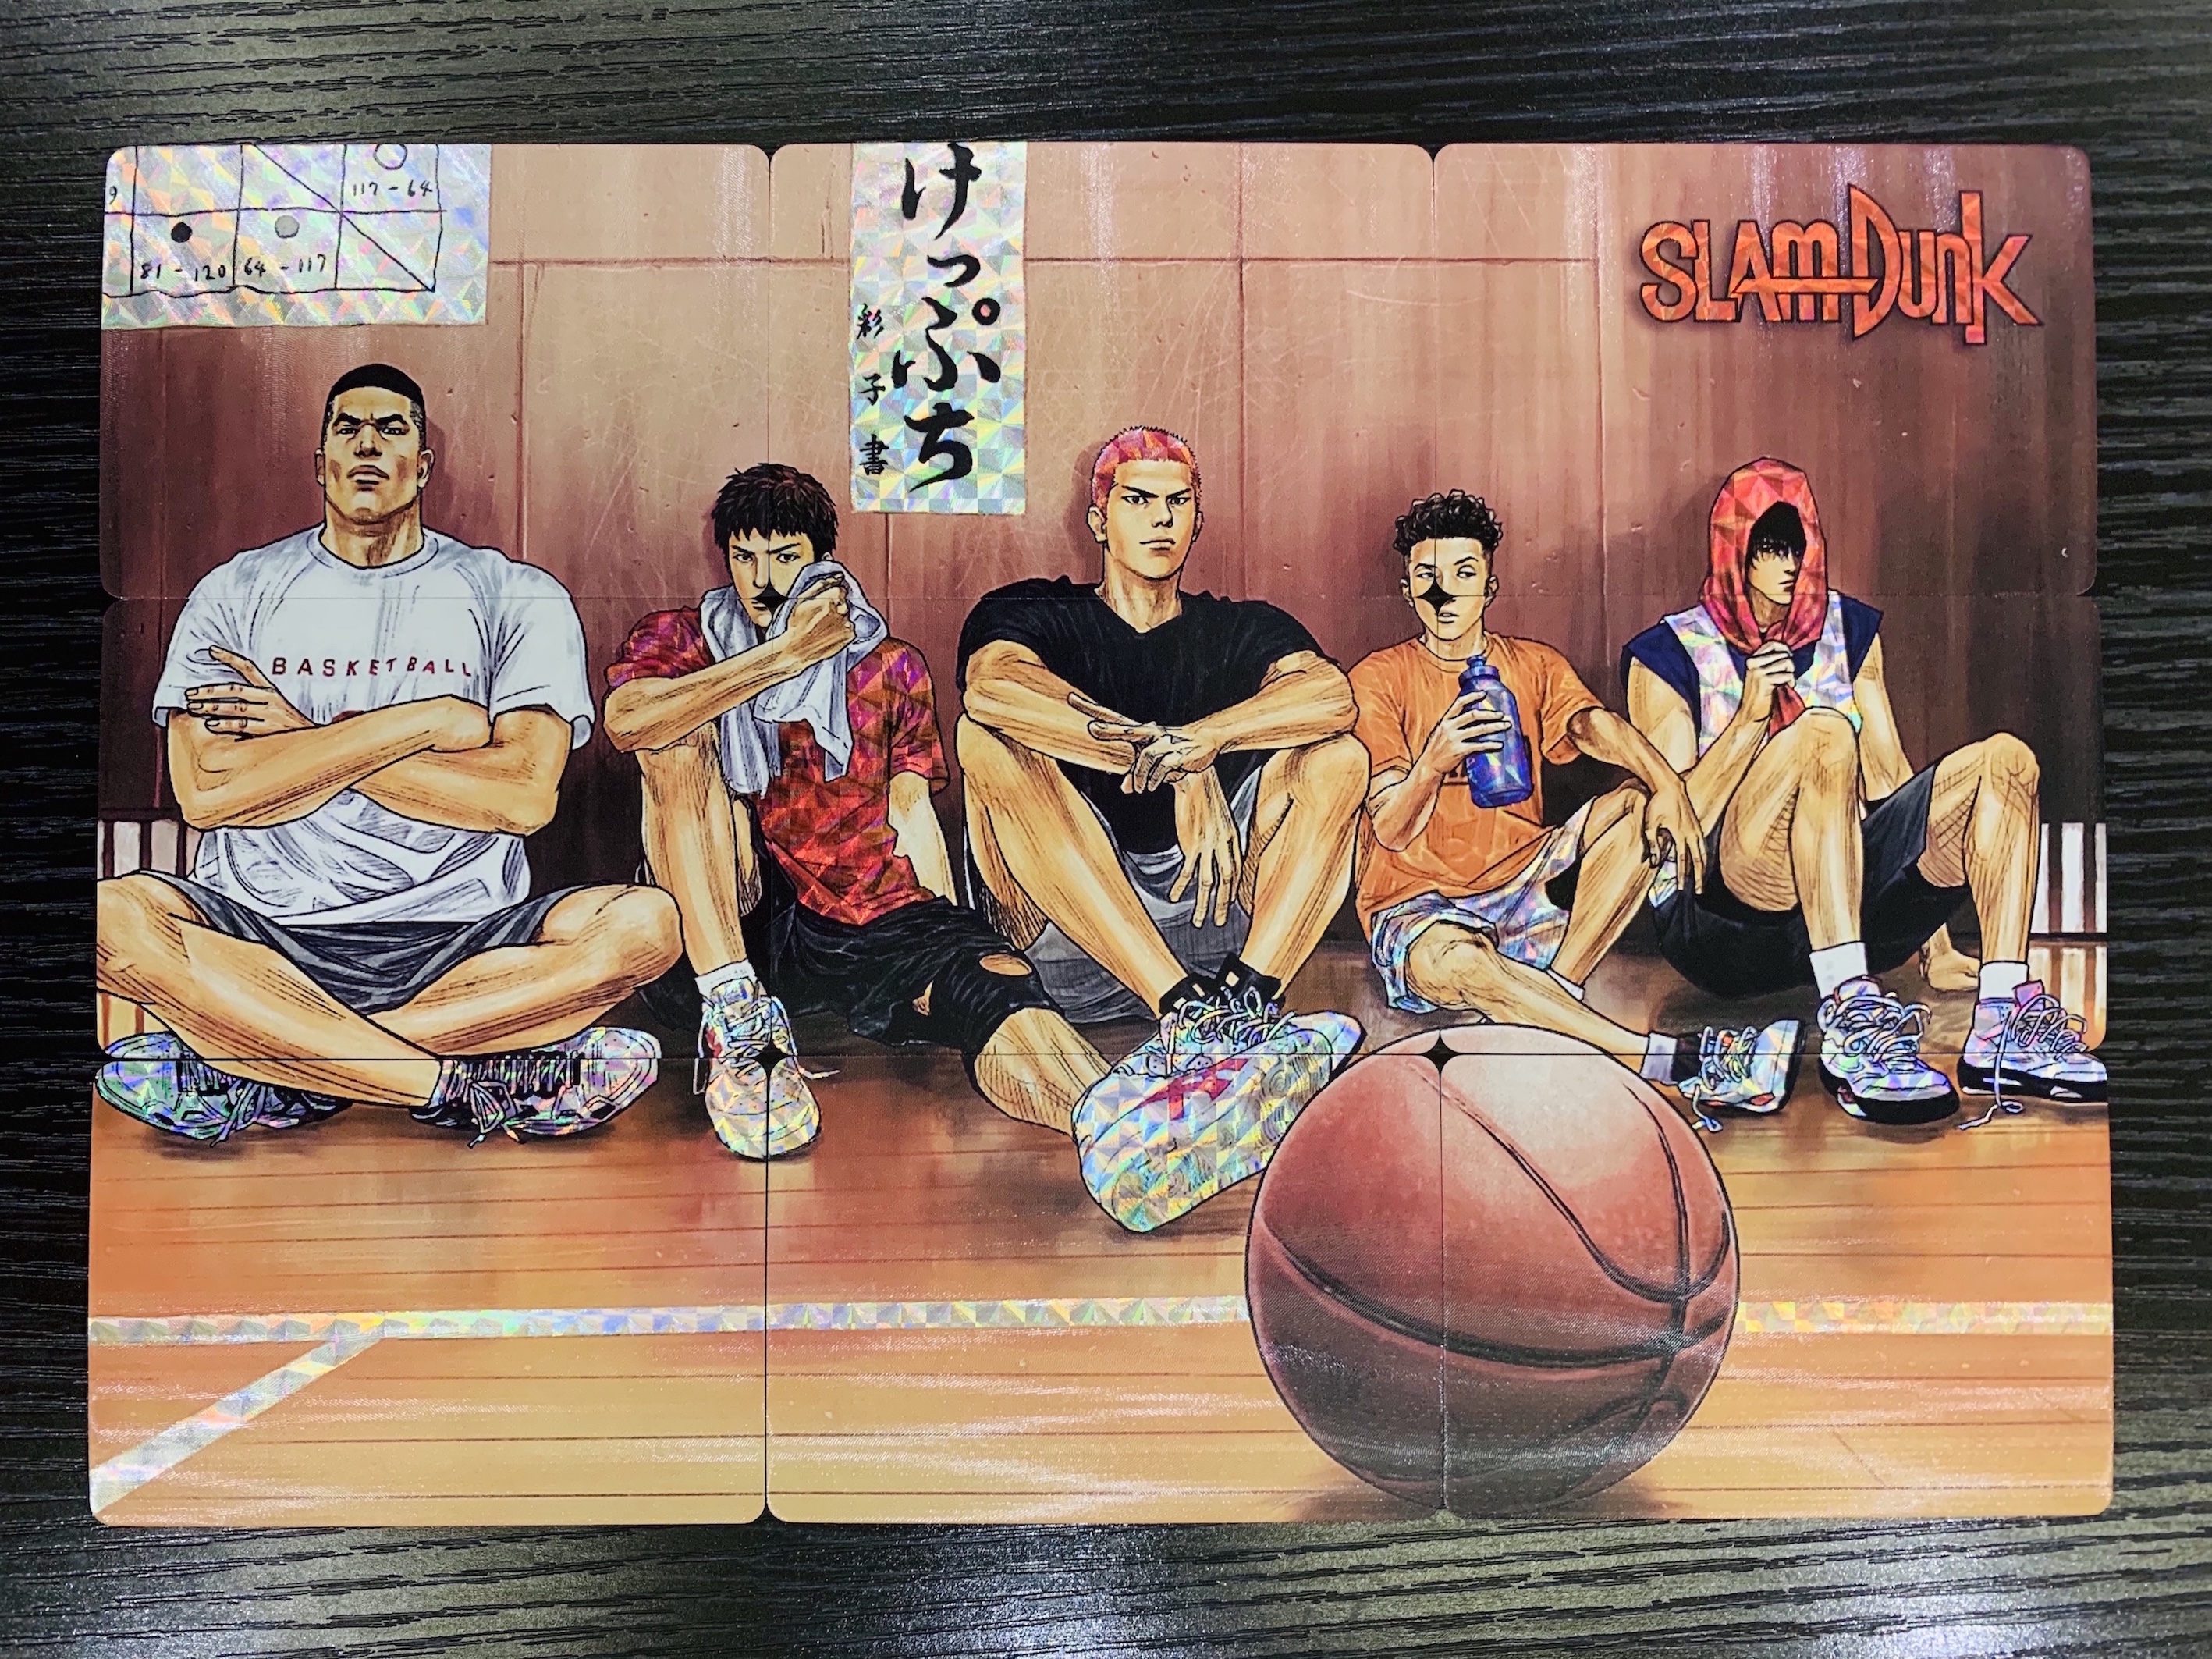 10pcs/set SLAM DUNK 9 In 1Toys Hobbies Hobby Collectibles Game Collection Anime Cards